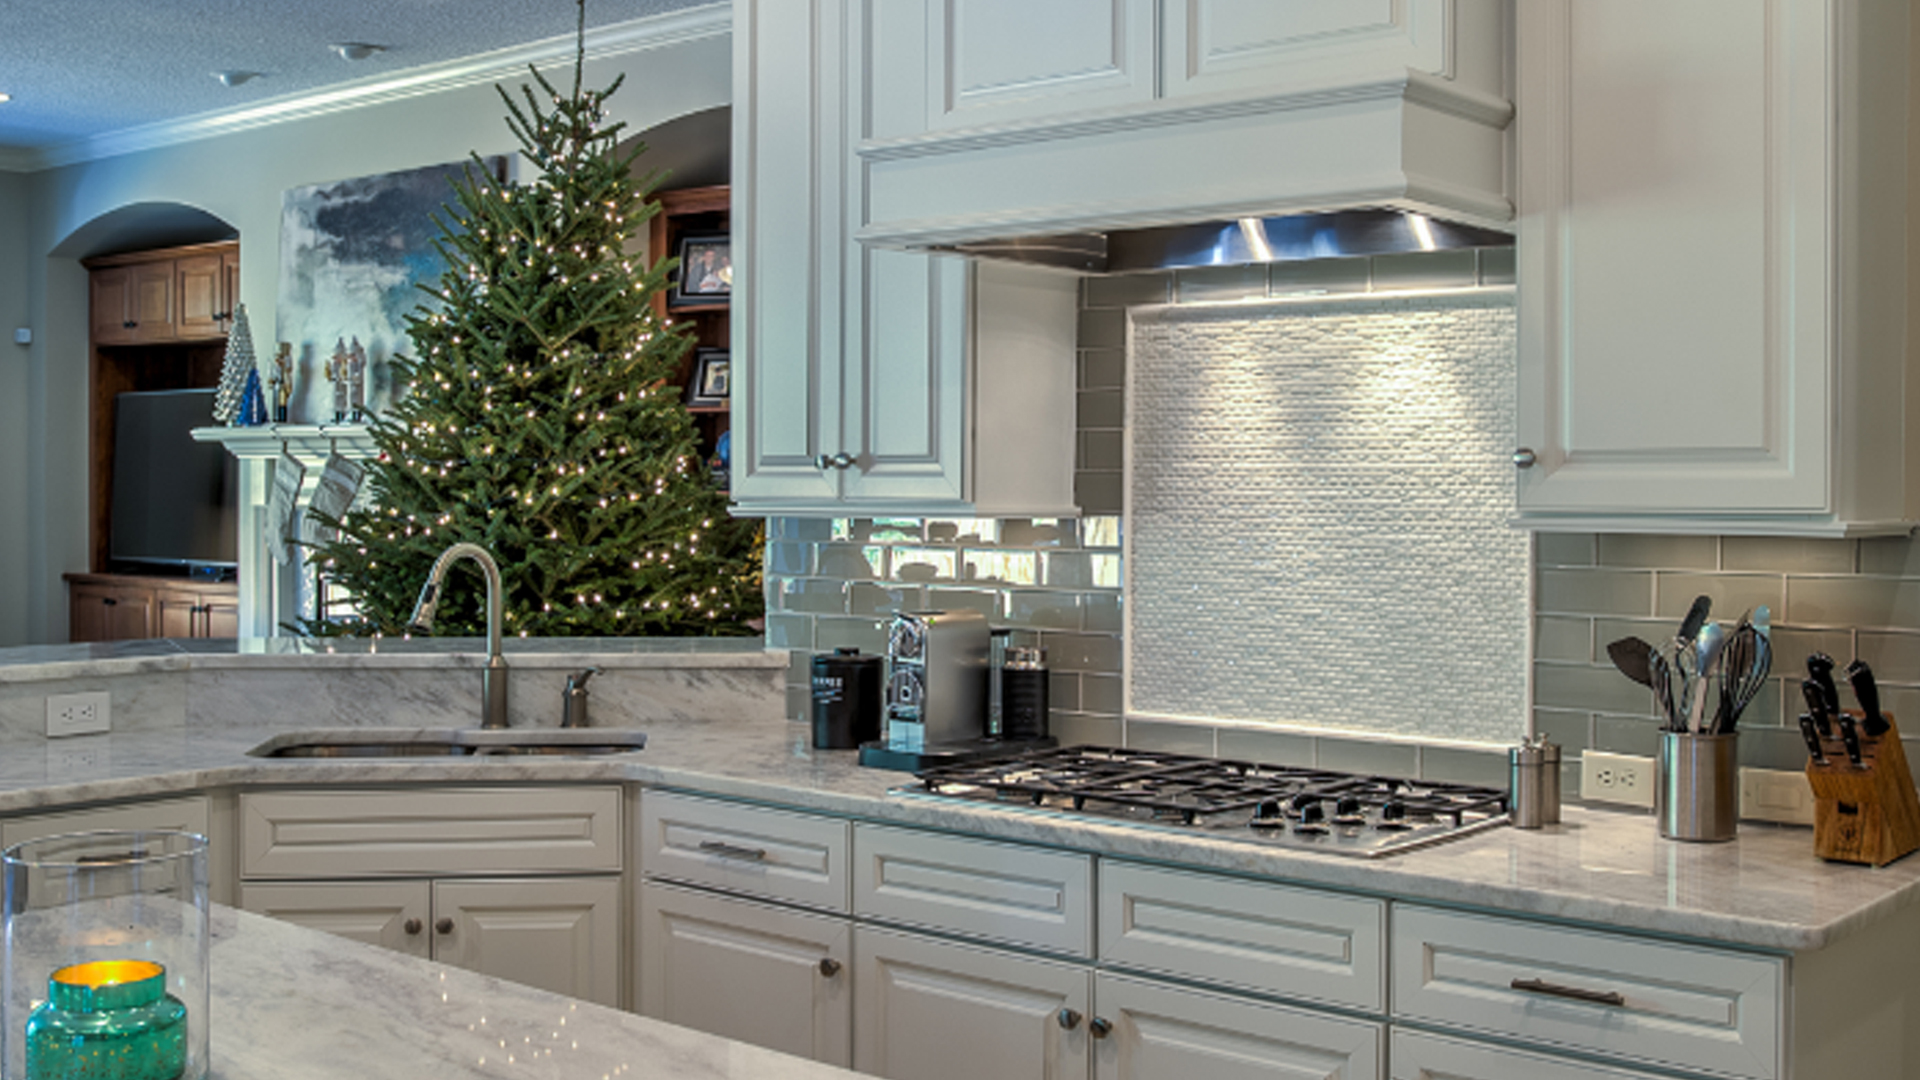 white cabinets in kitchen during Christmas